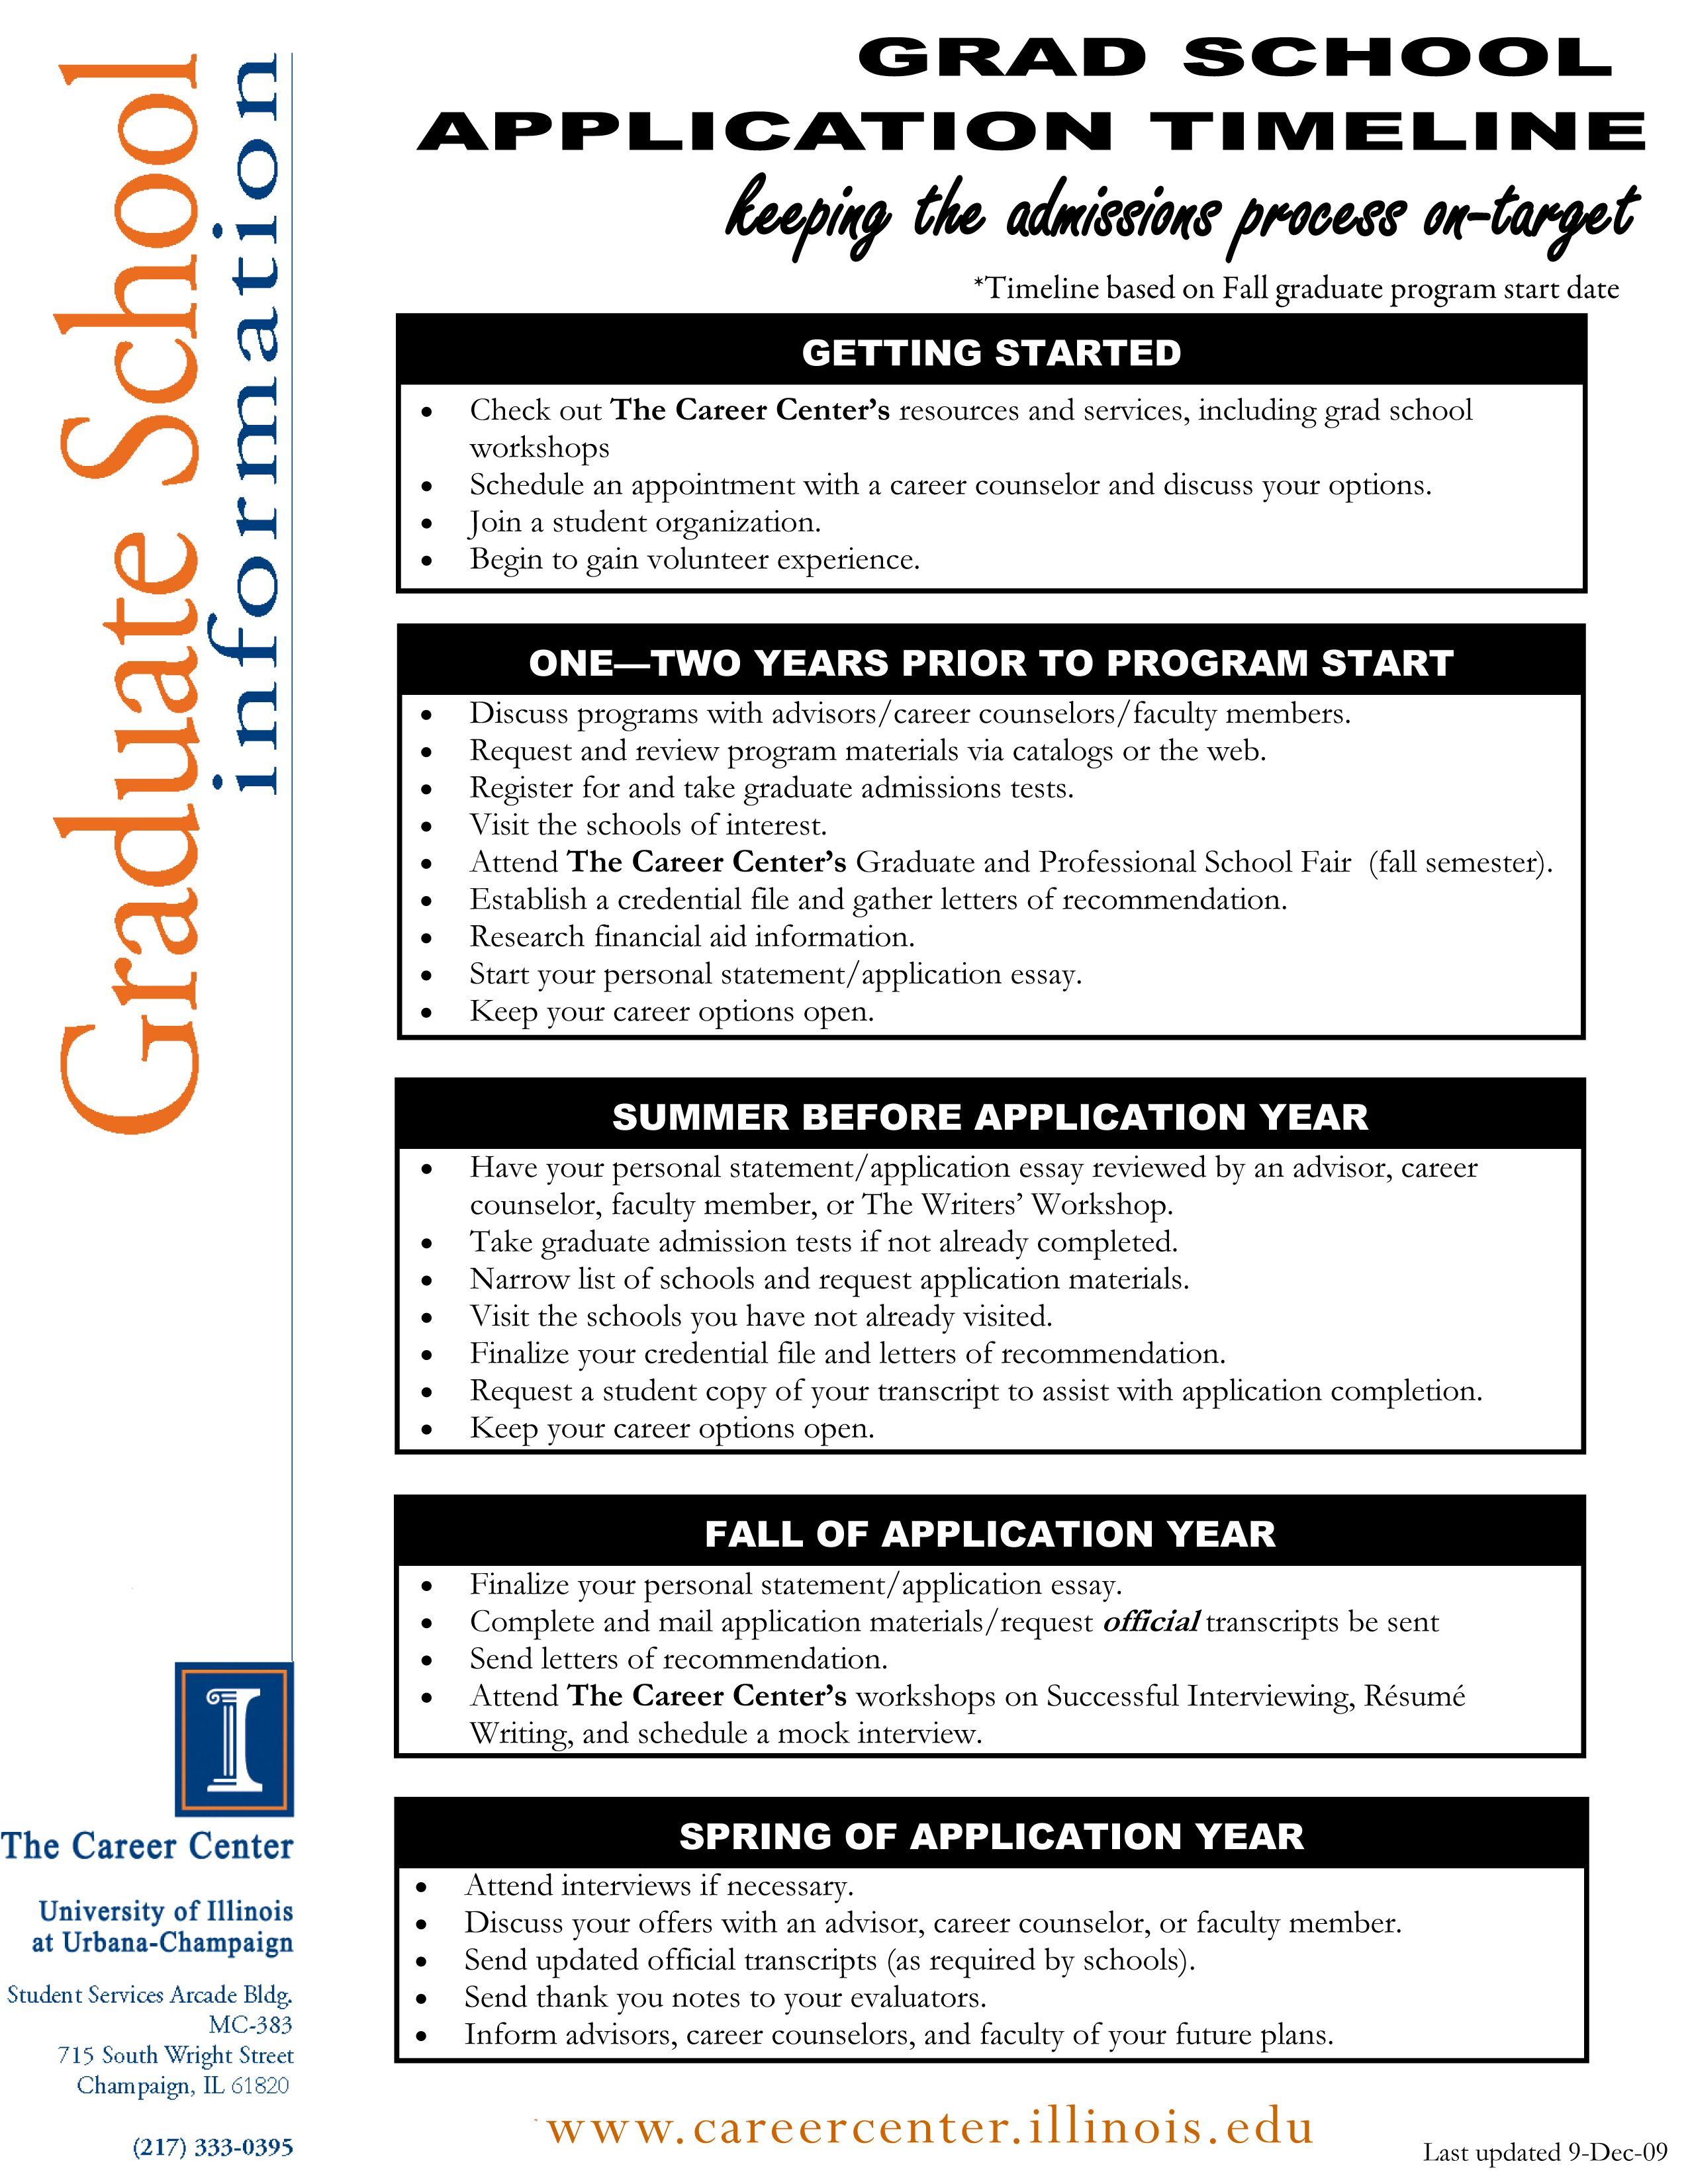 Applying For Graduate School Use This Application Timeline As A